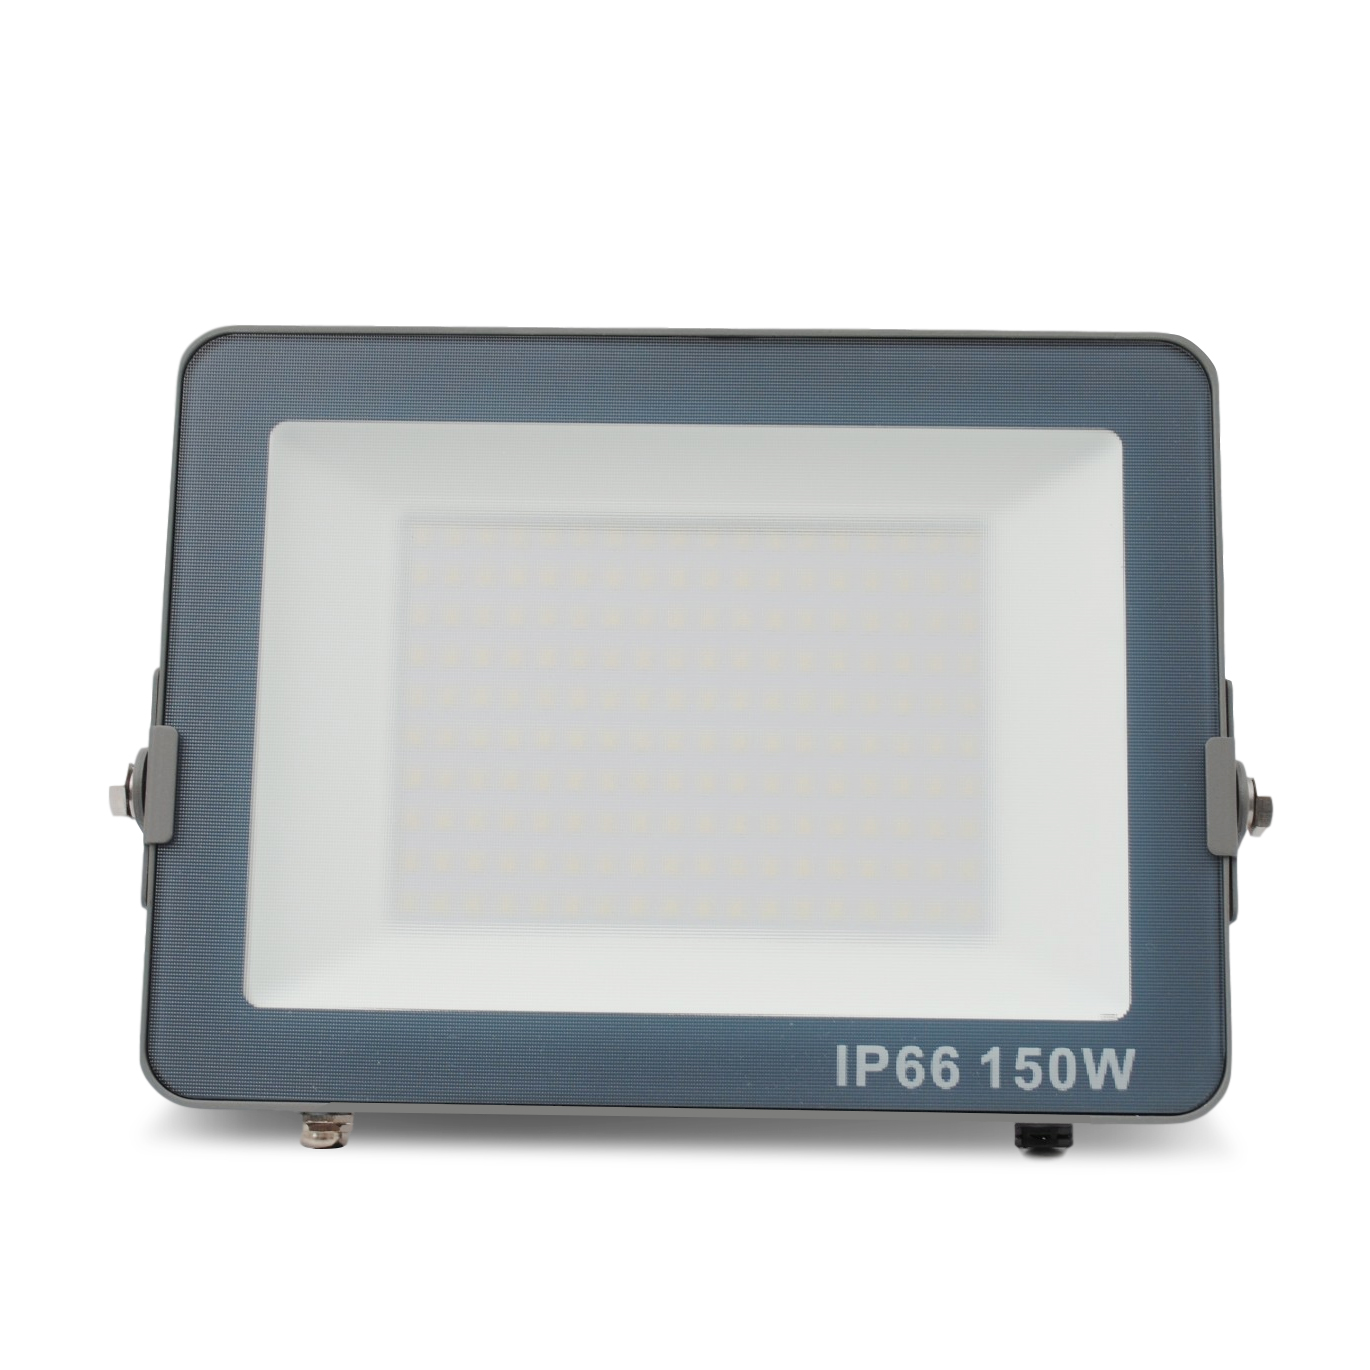 High quality Cheap Factory Price 150w led flood light ip65 waterproof Outdoor Security  with wholesale Cheap Factory Price